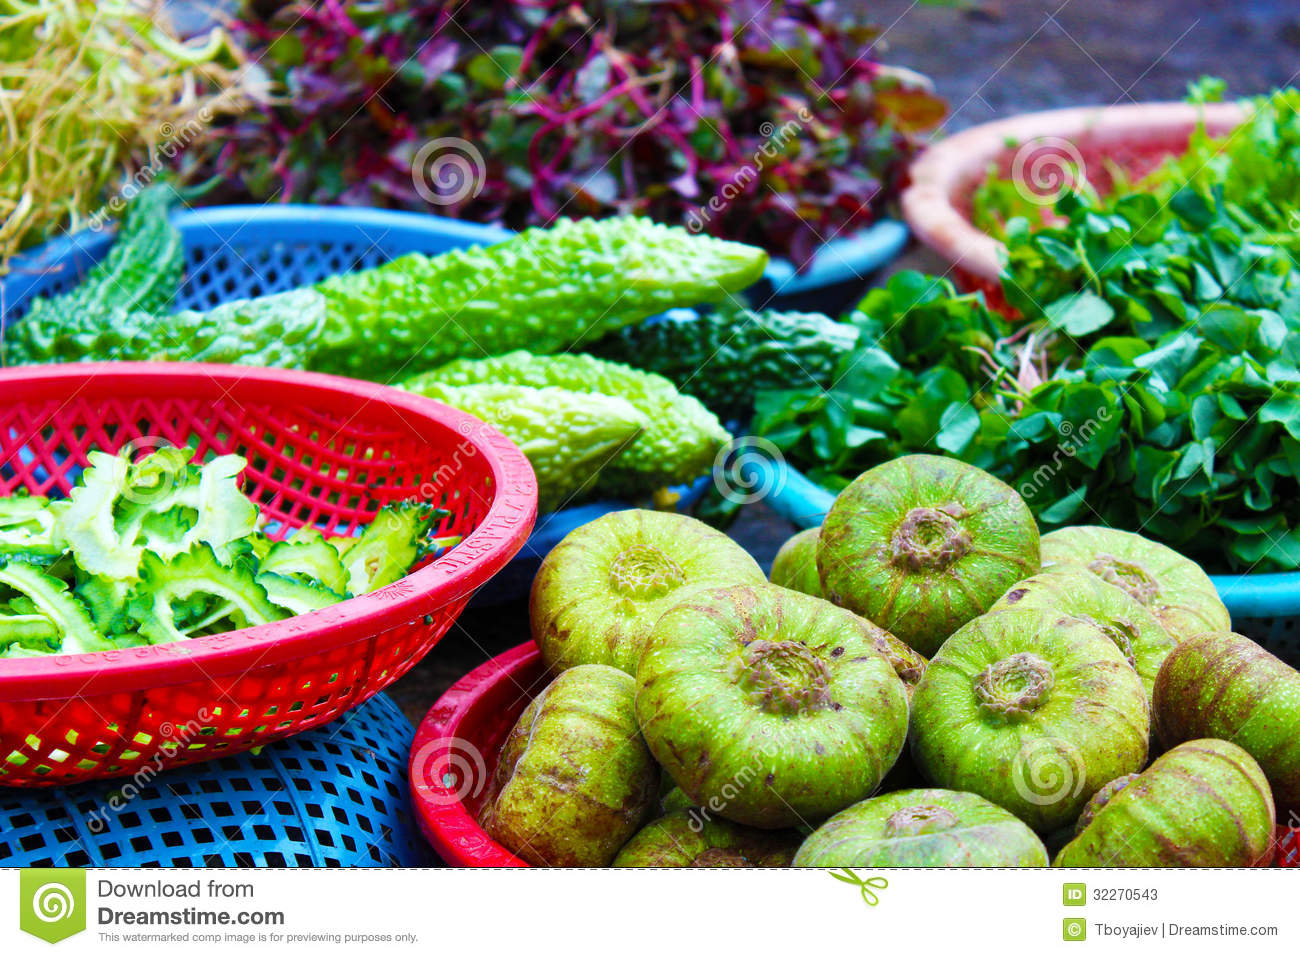 Exotic Fruits And Vegetables In Vietnam Stock Image ...